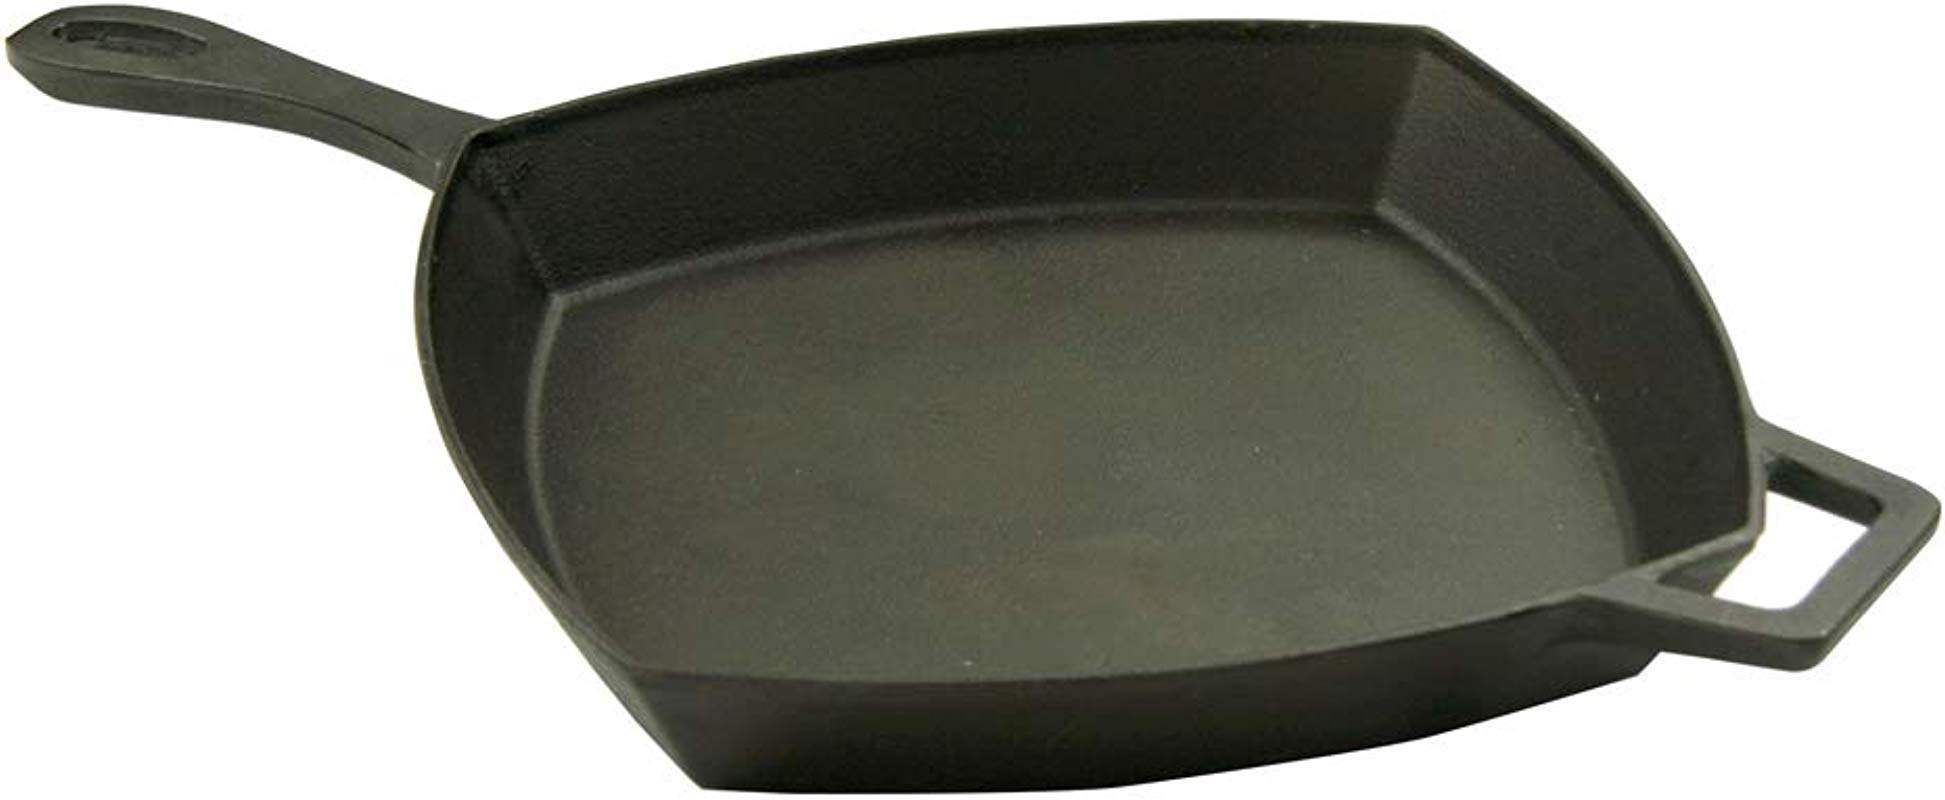 Bayou Classic 7433 7433 12 In Square Skillet 12 Black Cast Iron